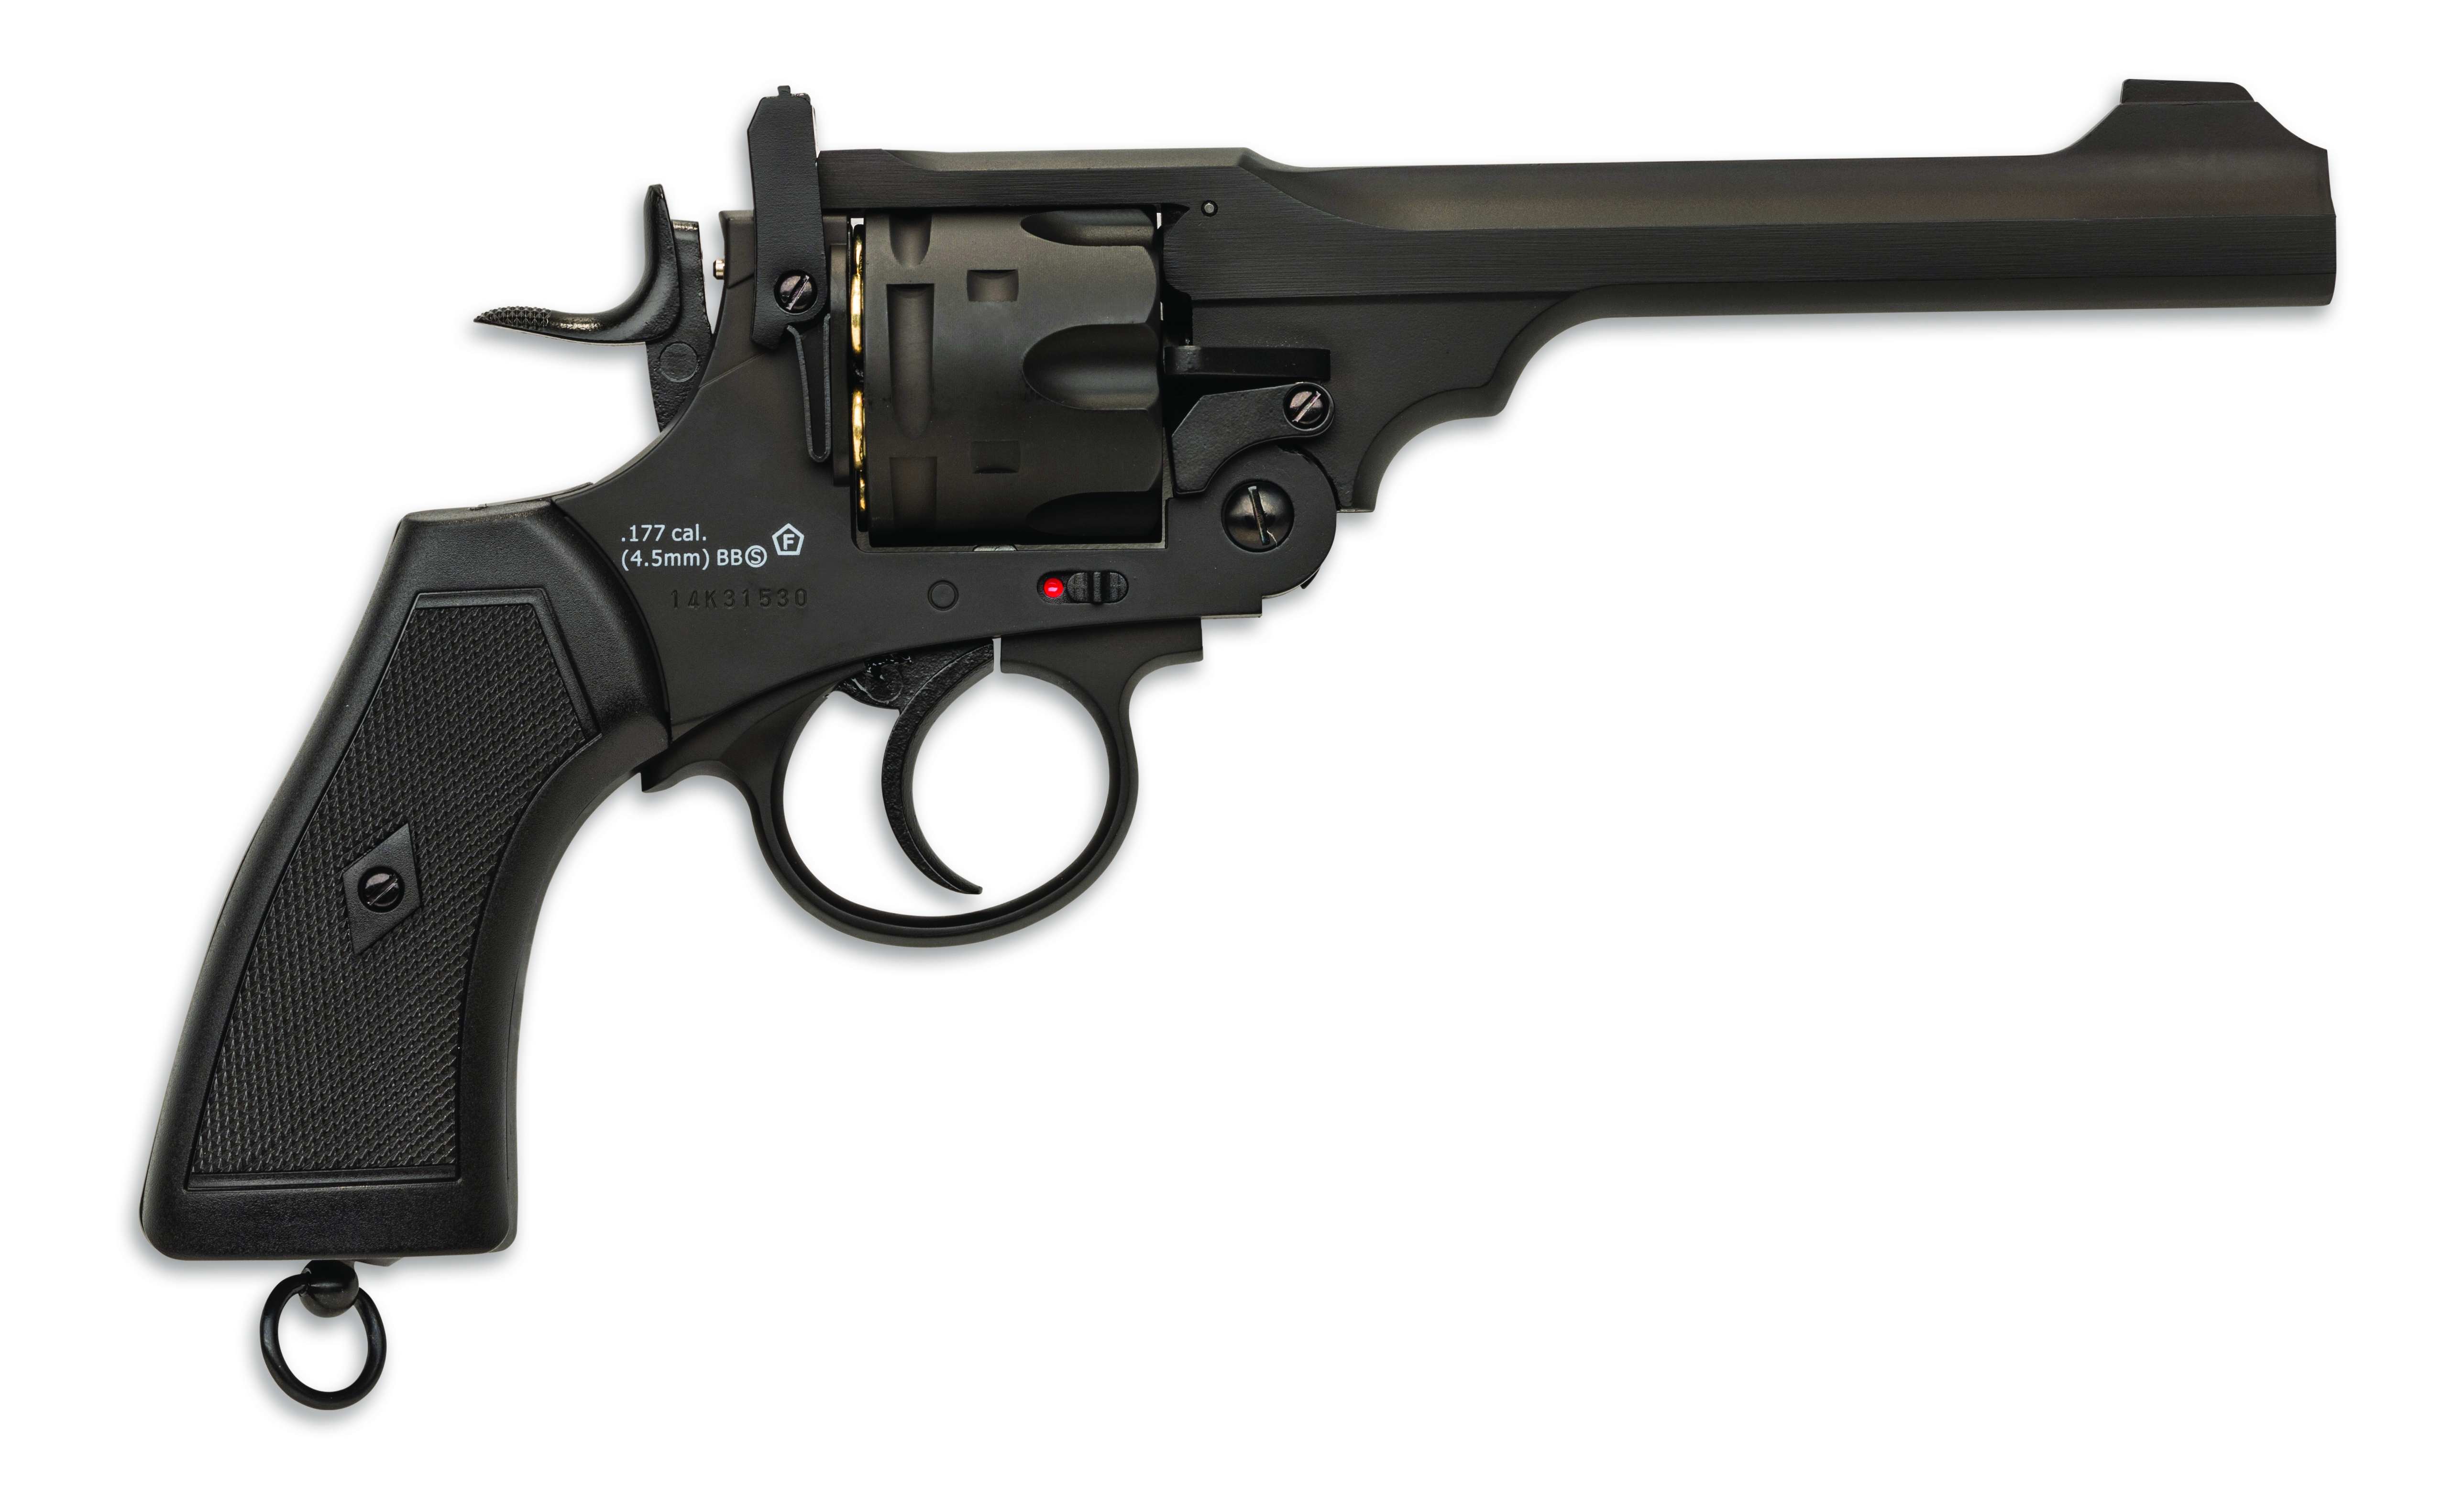 dating hr revolvers We offer: rifles, colt, shotguns, pistols, rifle, springfield, winchester, arms, action.